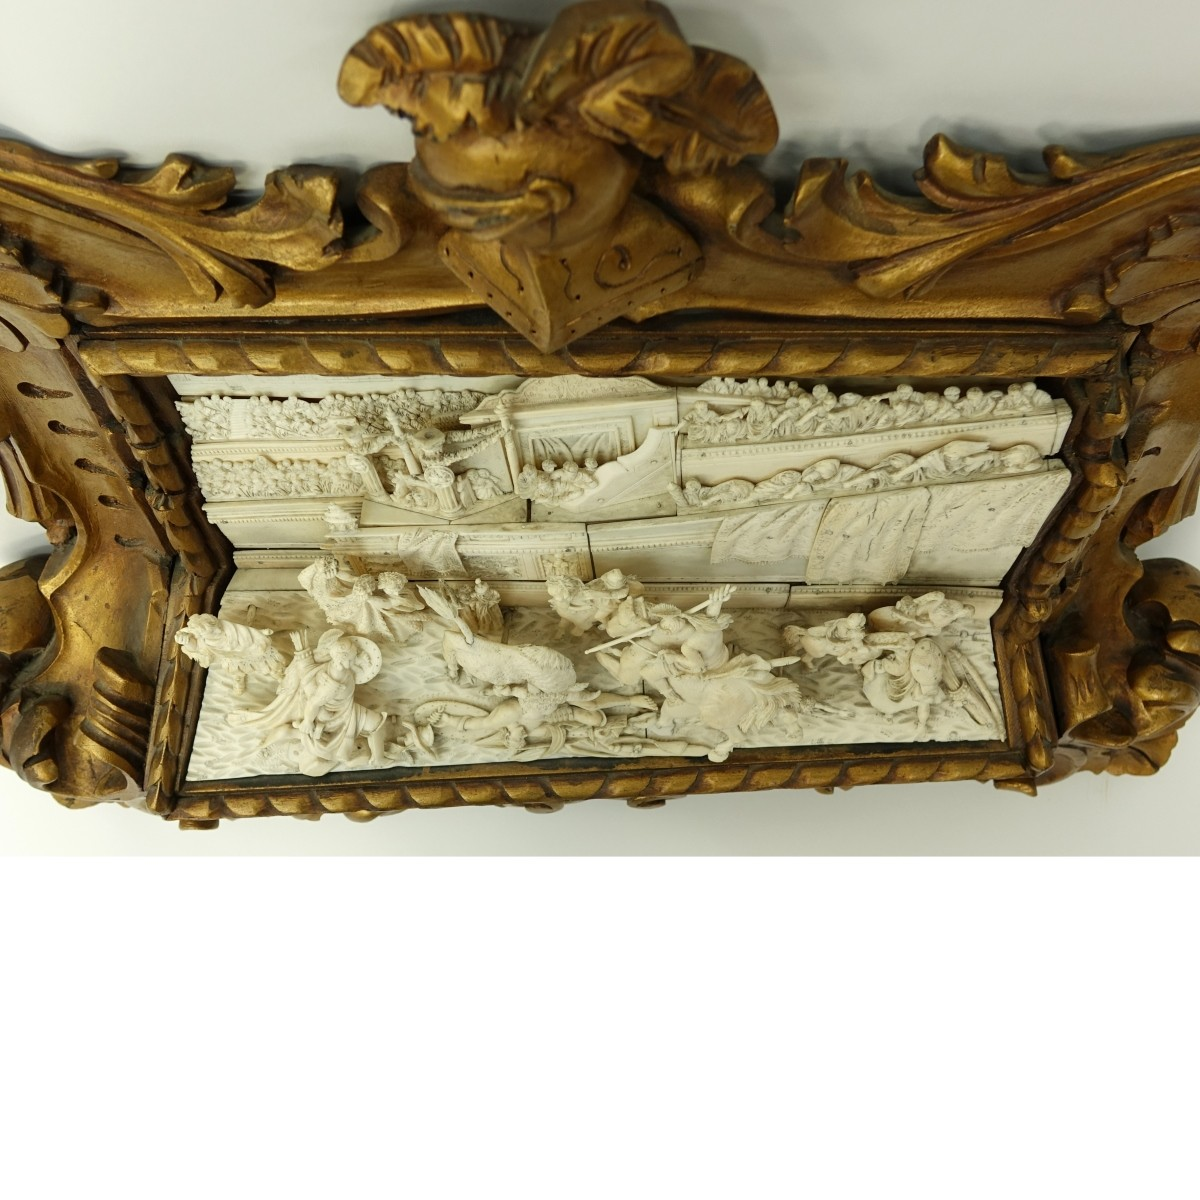 19th C. Italian School Carved Ivory Relief